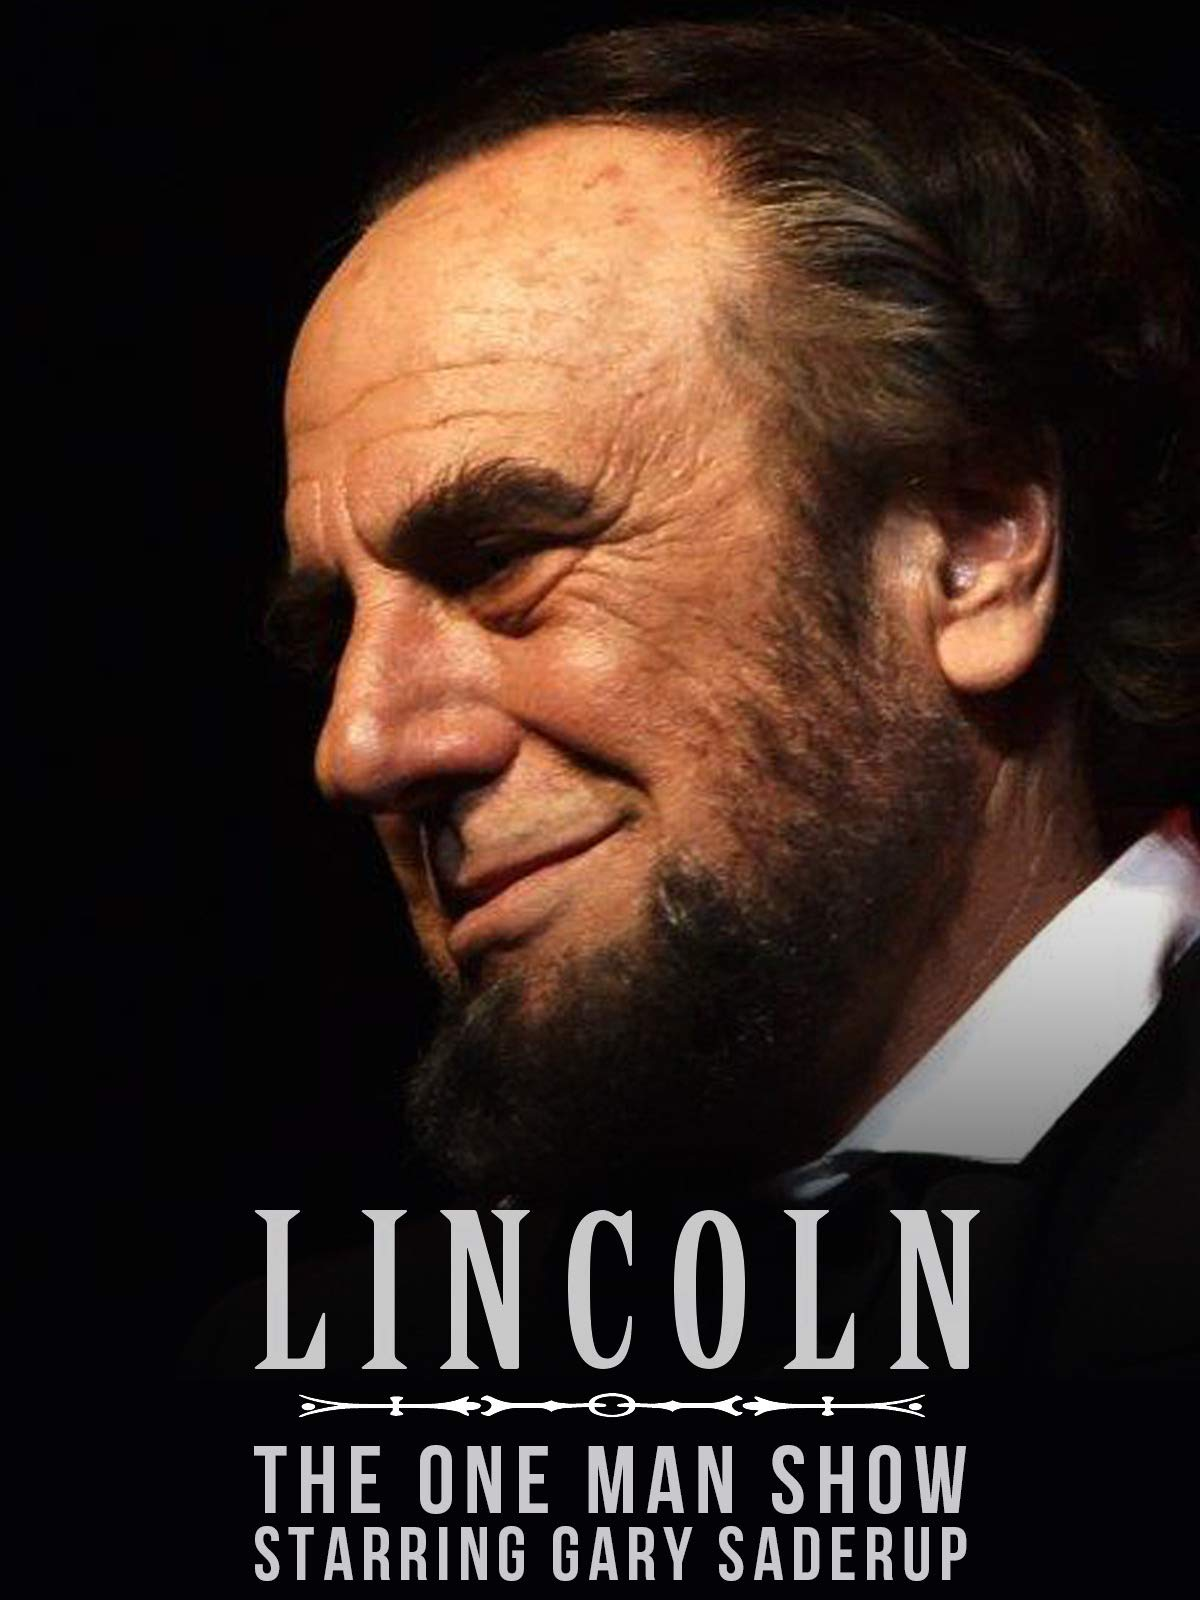 Lincoln - The One Man Show Starring Gary Saderup